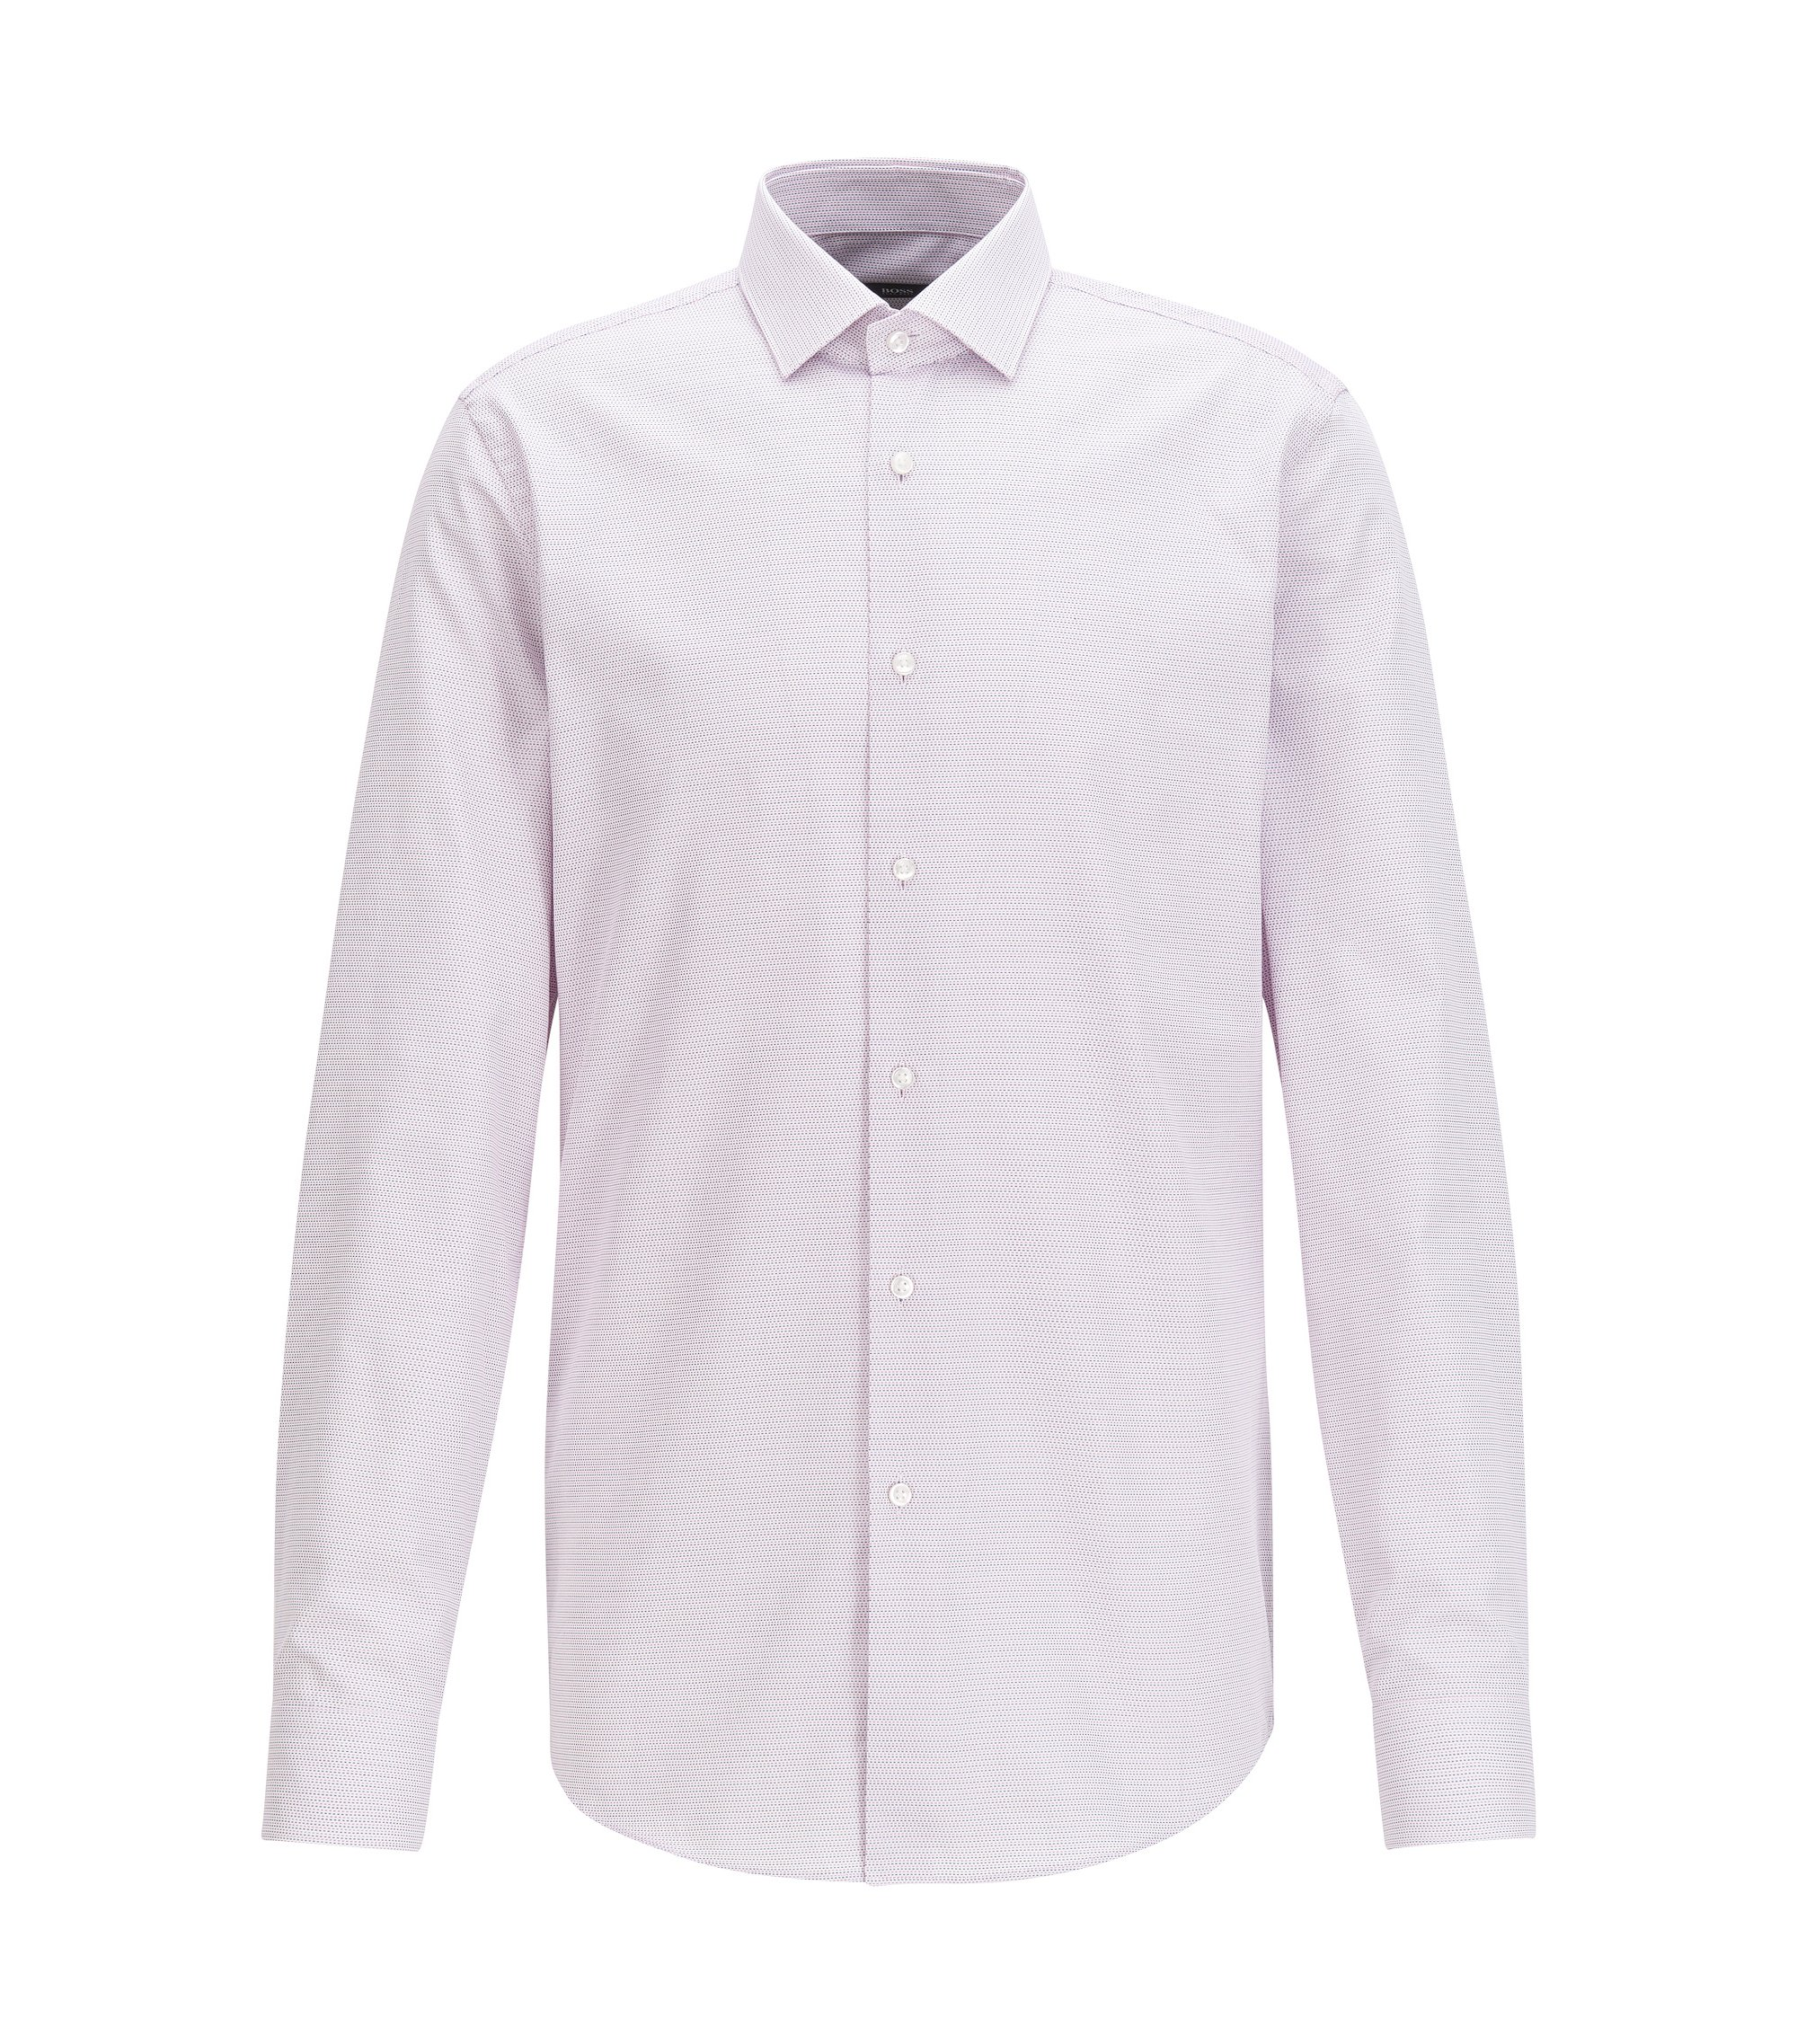 Micro-Pattern Cotton Dress Shirt, Slim Fit | Ismo, light pink